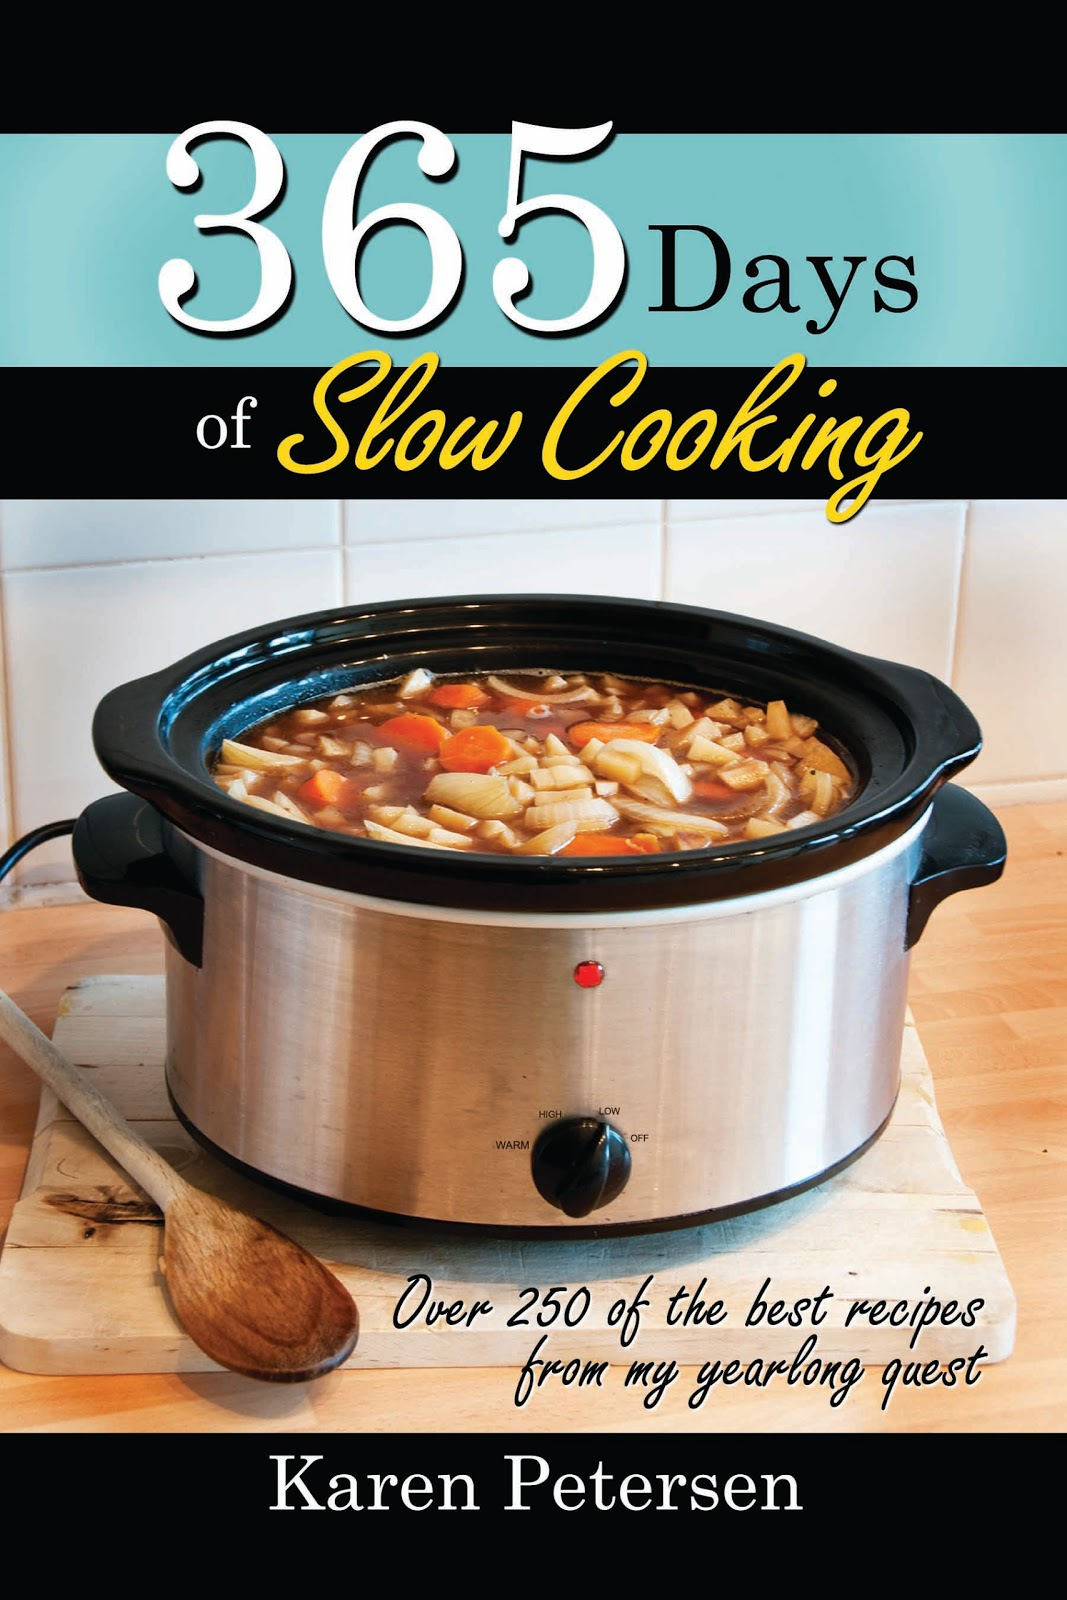 The Really Exciting Crockstar Giveaway 365 Days Of Slow